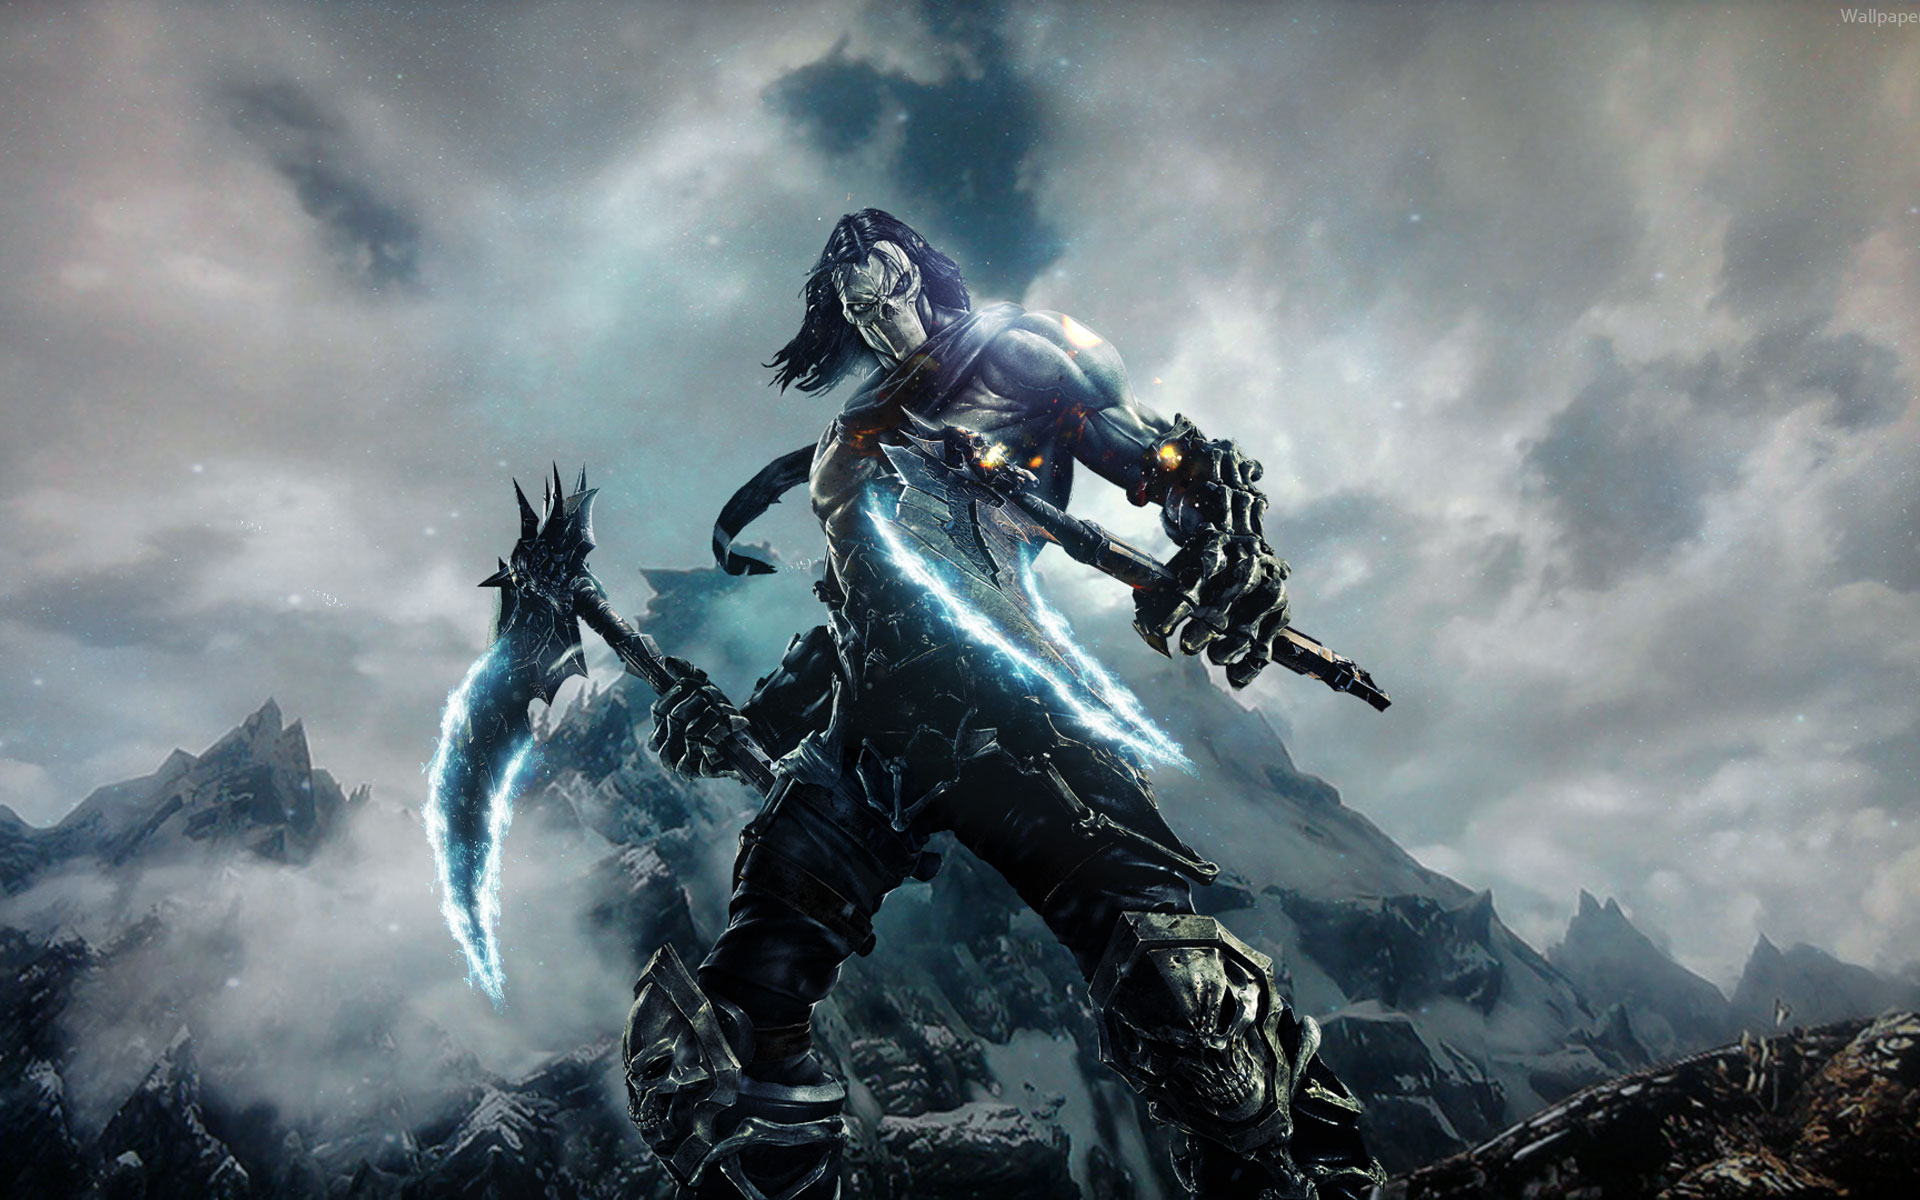 Darksiders II, Saints Row 3 Going DRM-Free with GOG